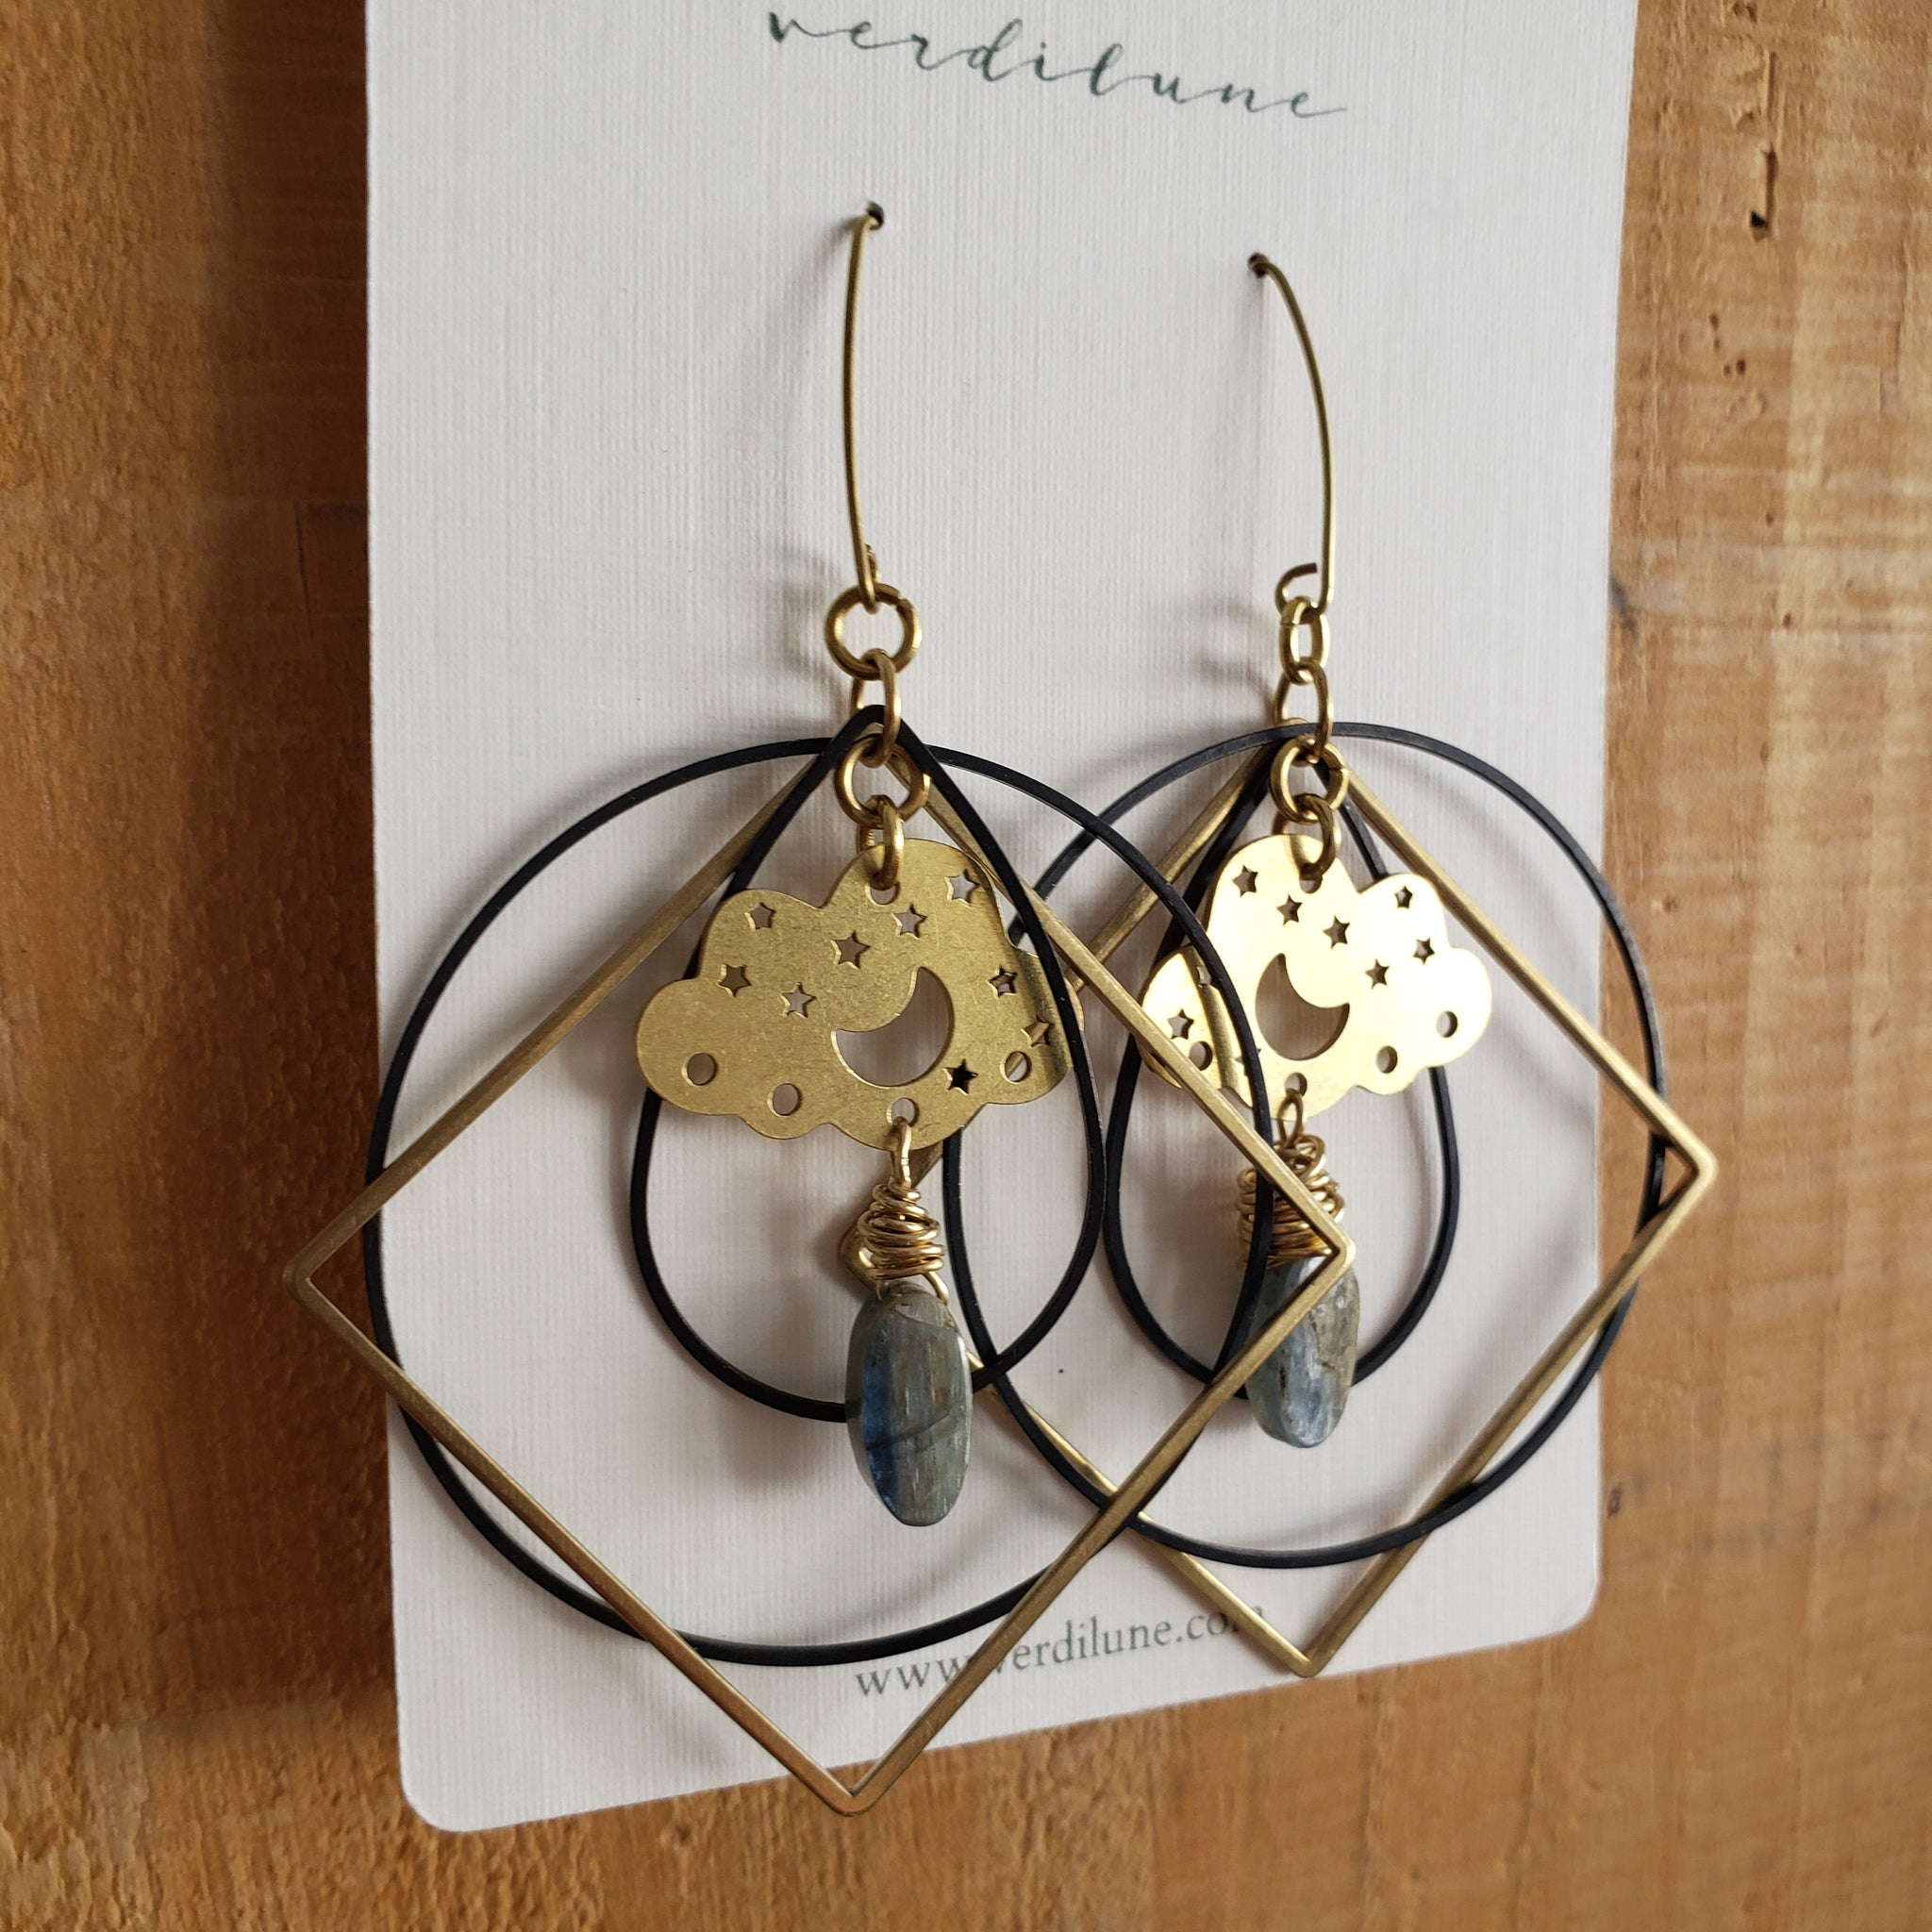 Elemental Metals Collection ◇ Cloudy Night Sky◇ Celestially-Inspired Brass Earrings